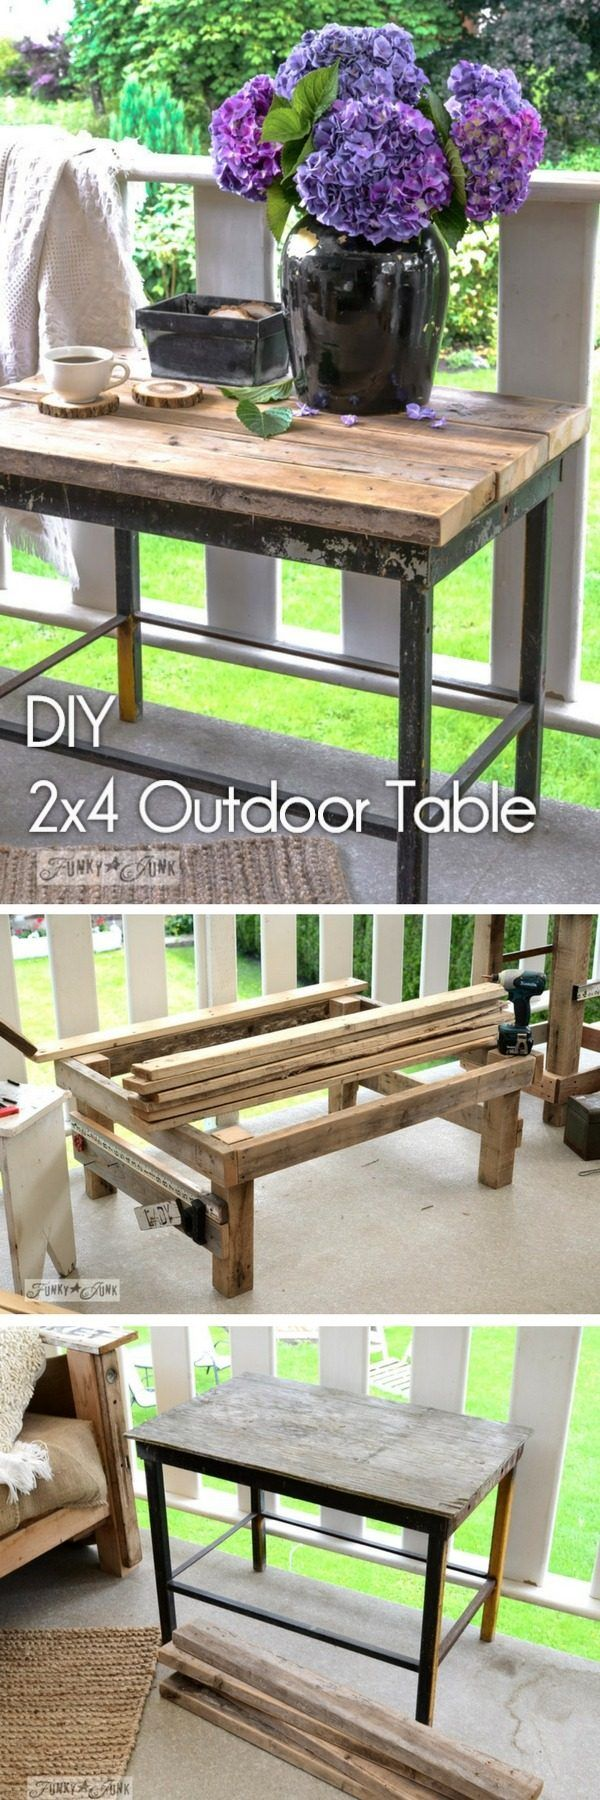 Check out how to make a #DIY #wooden outdoor table from 2x4s #HomeDecorIdeas @istandarddesign